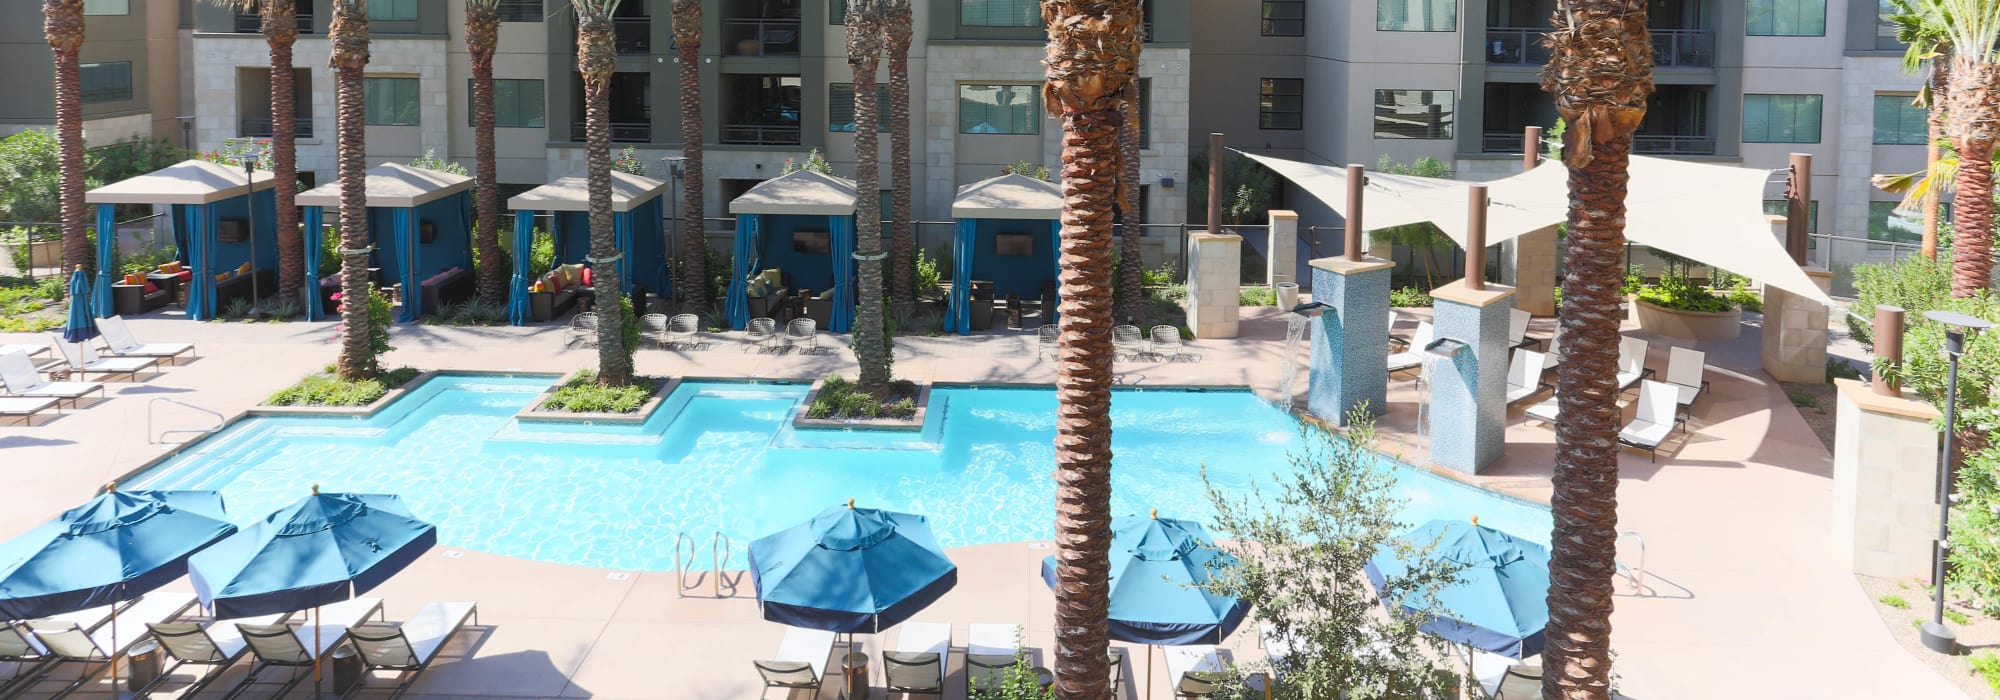 View of the pool area from an upper-floor balcony at Avant at Fashion Center in Chandler, Arizona